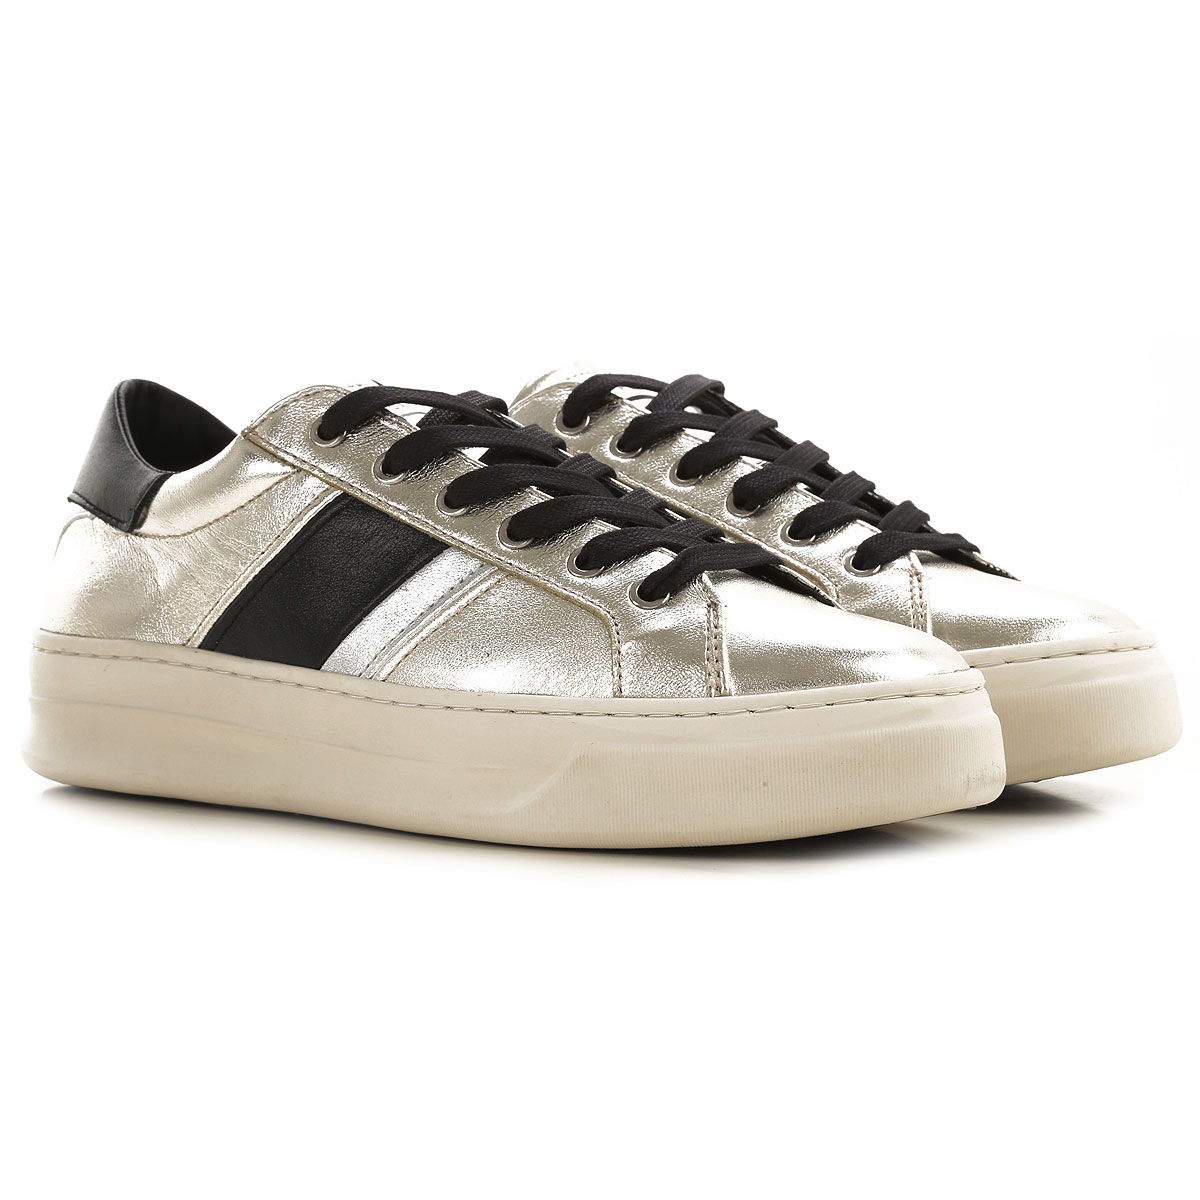 Crime Sneakers for Women On Sale, Metallic Silver, Leather, 2019, 10 6 7 8 9